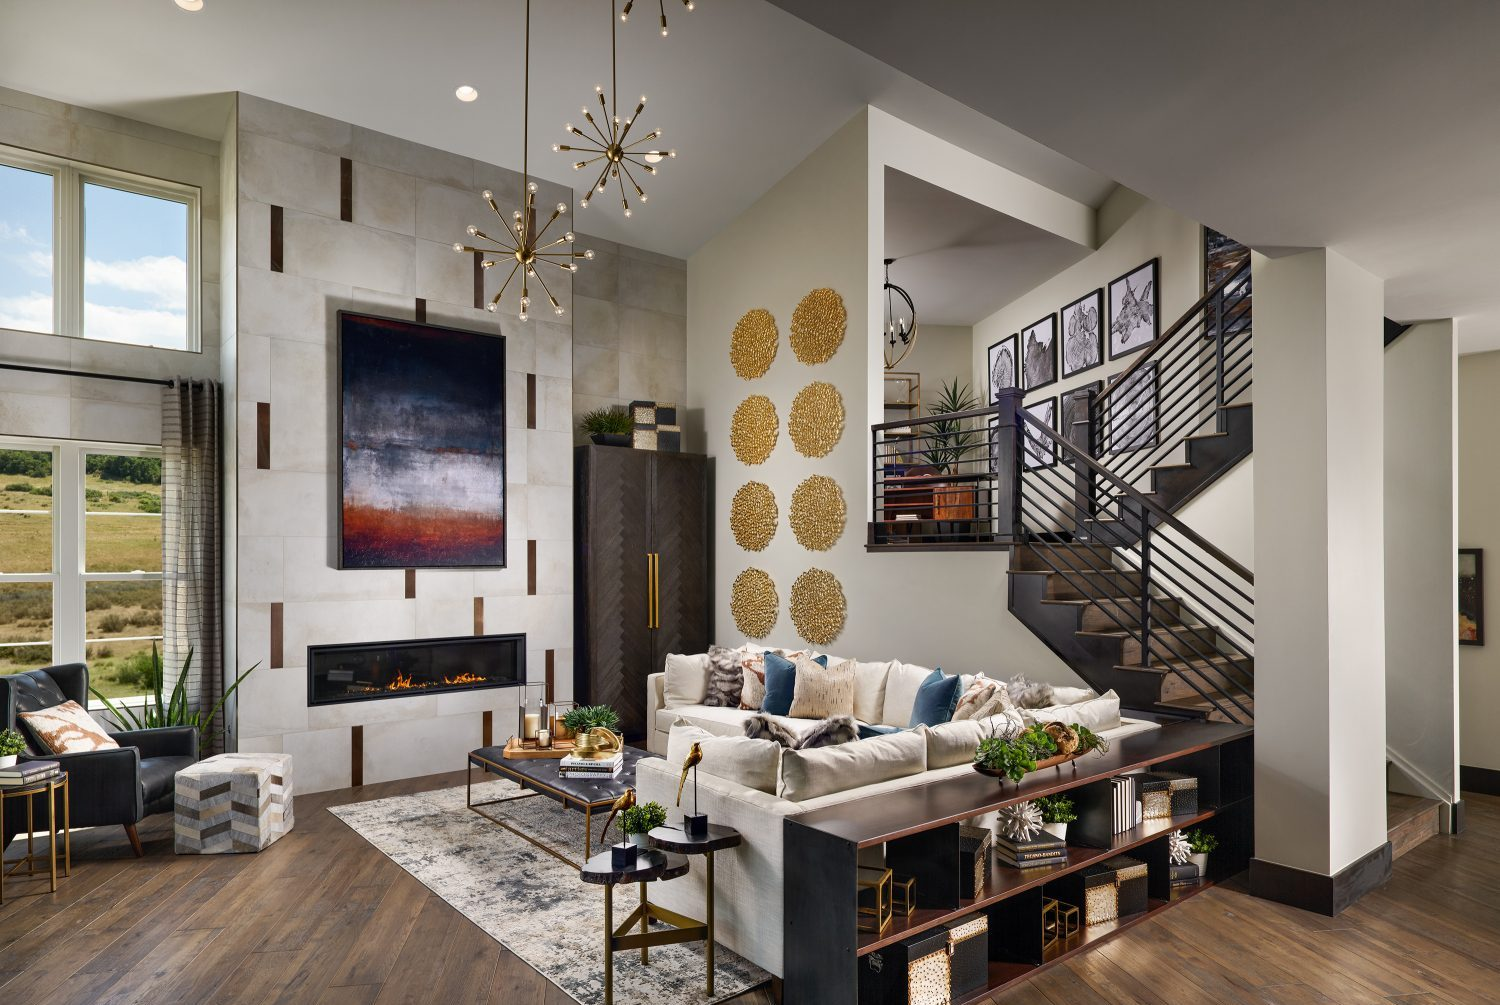 Award- winning double-height great room with open rail stair case, floor to ceiling windows and modern linear fireplace designed by Godden Sudik Architects